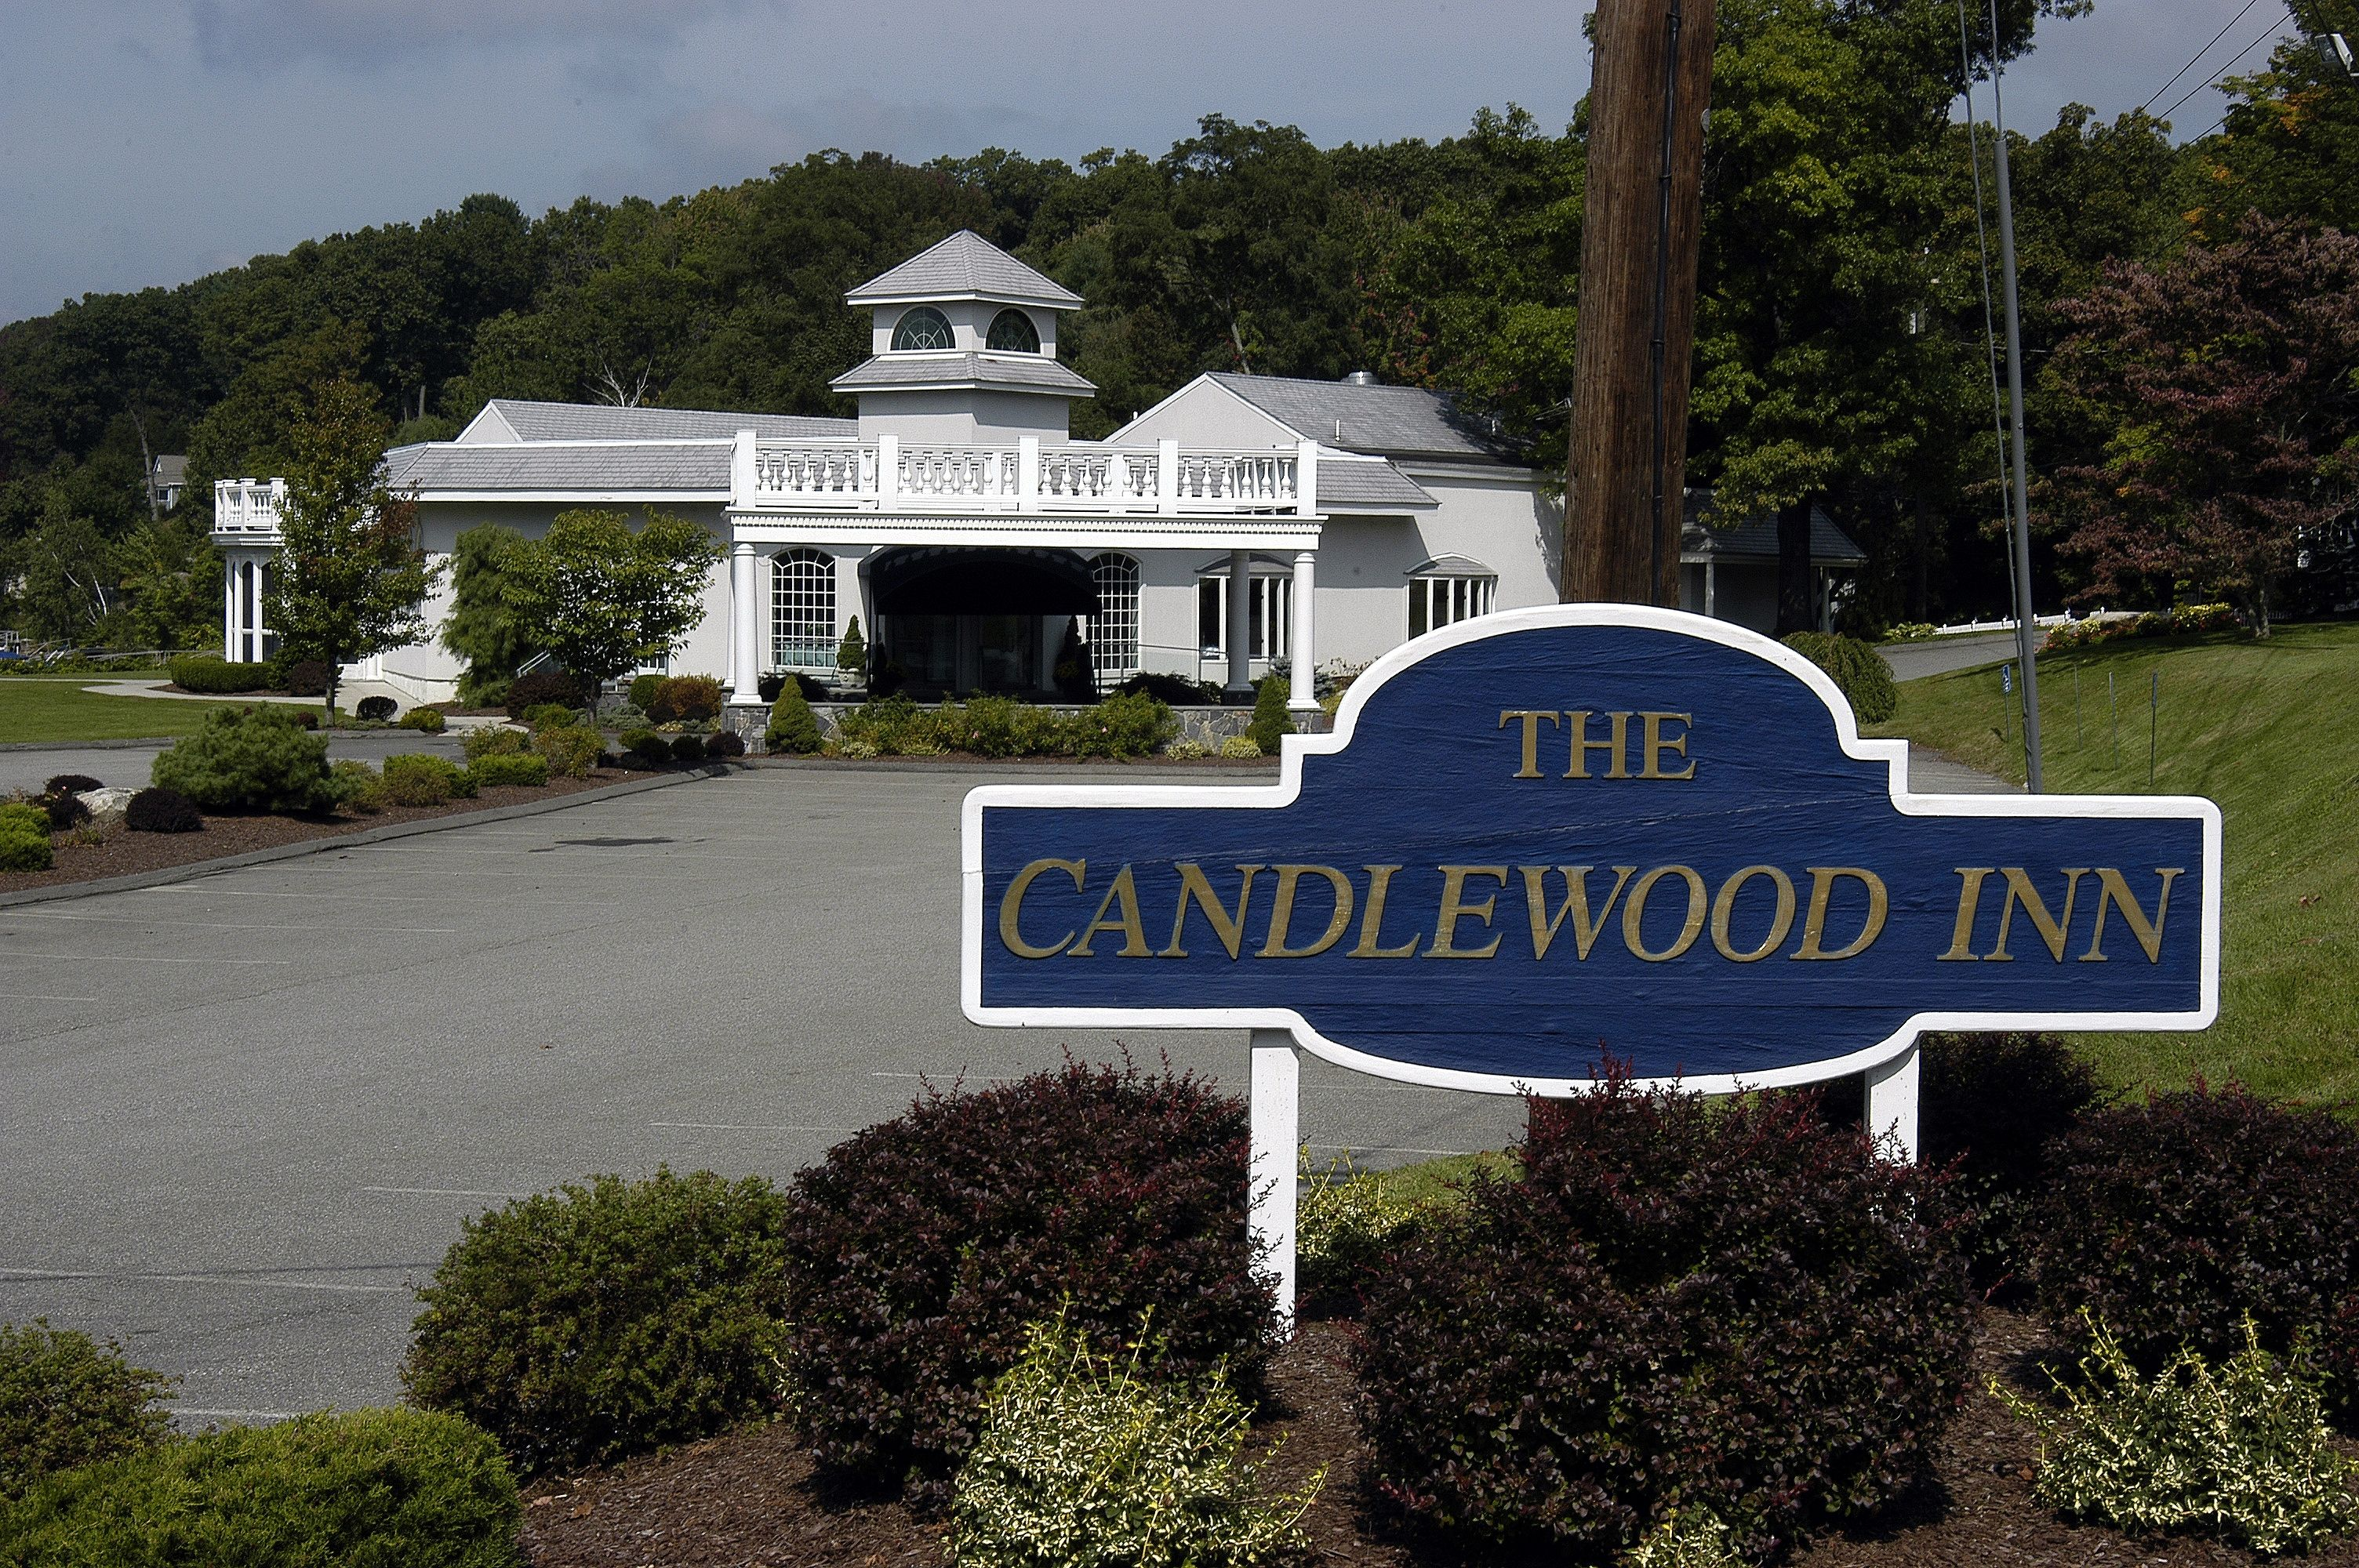 The candlewood inn located in danbury ct designed by leigh the candlewood inn located in danbury ct designed by leigh overland architect junglespirit Image collections